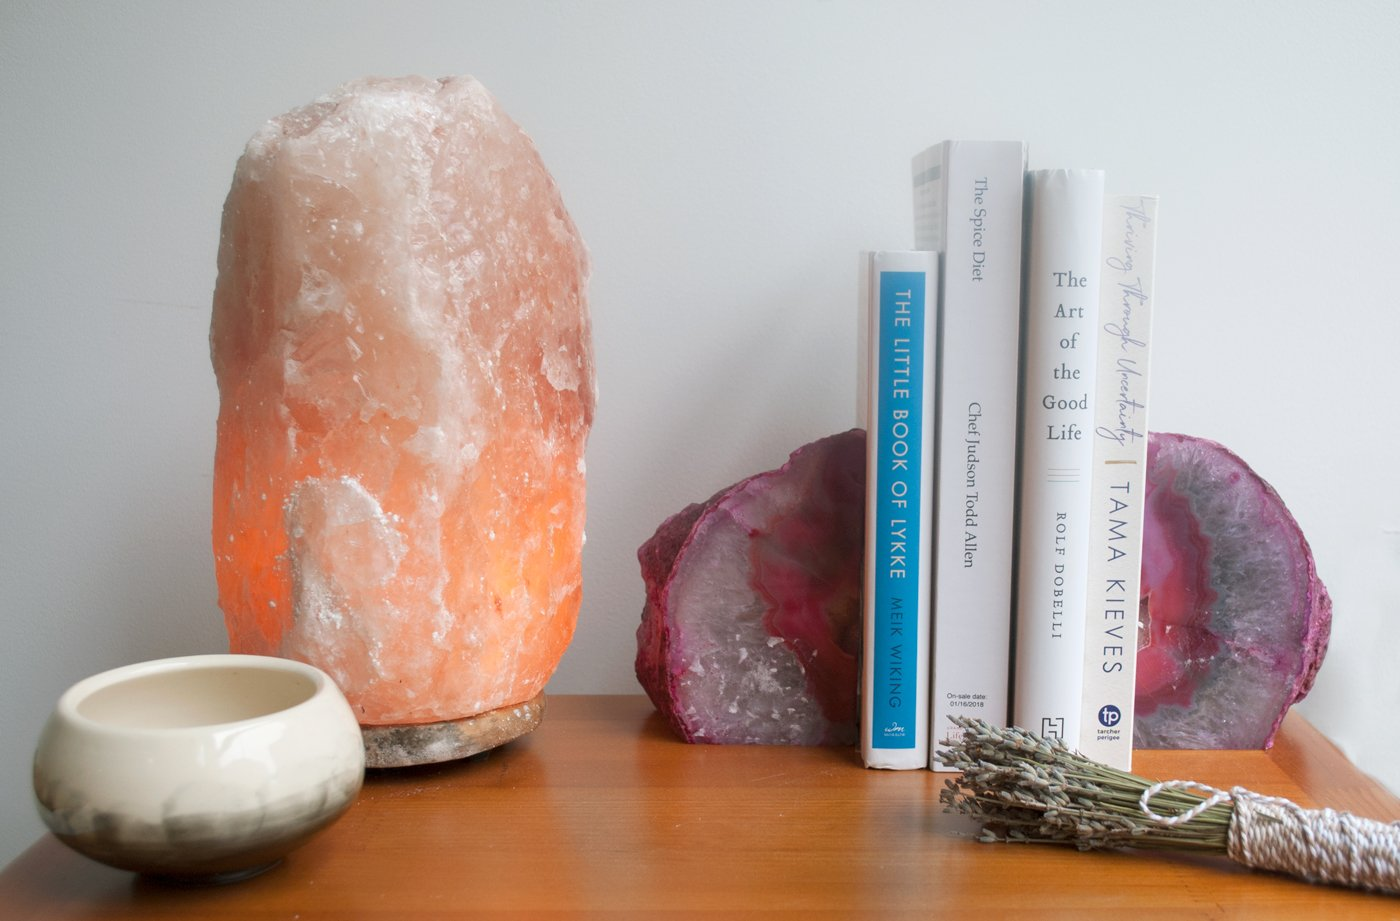 Thumbnail for Making a HomeGoods run? These are the 5 top wellness buys you'll find